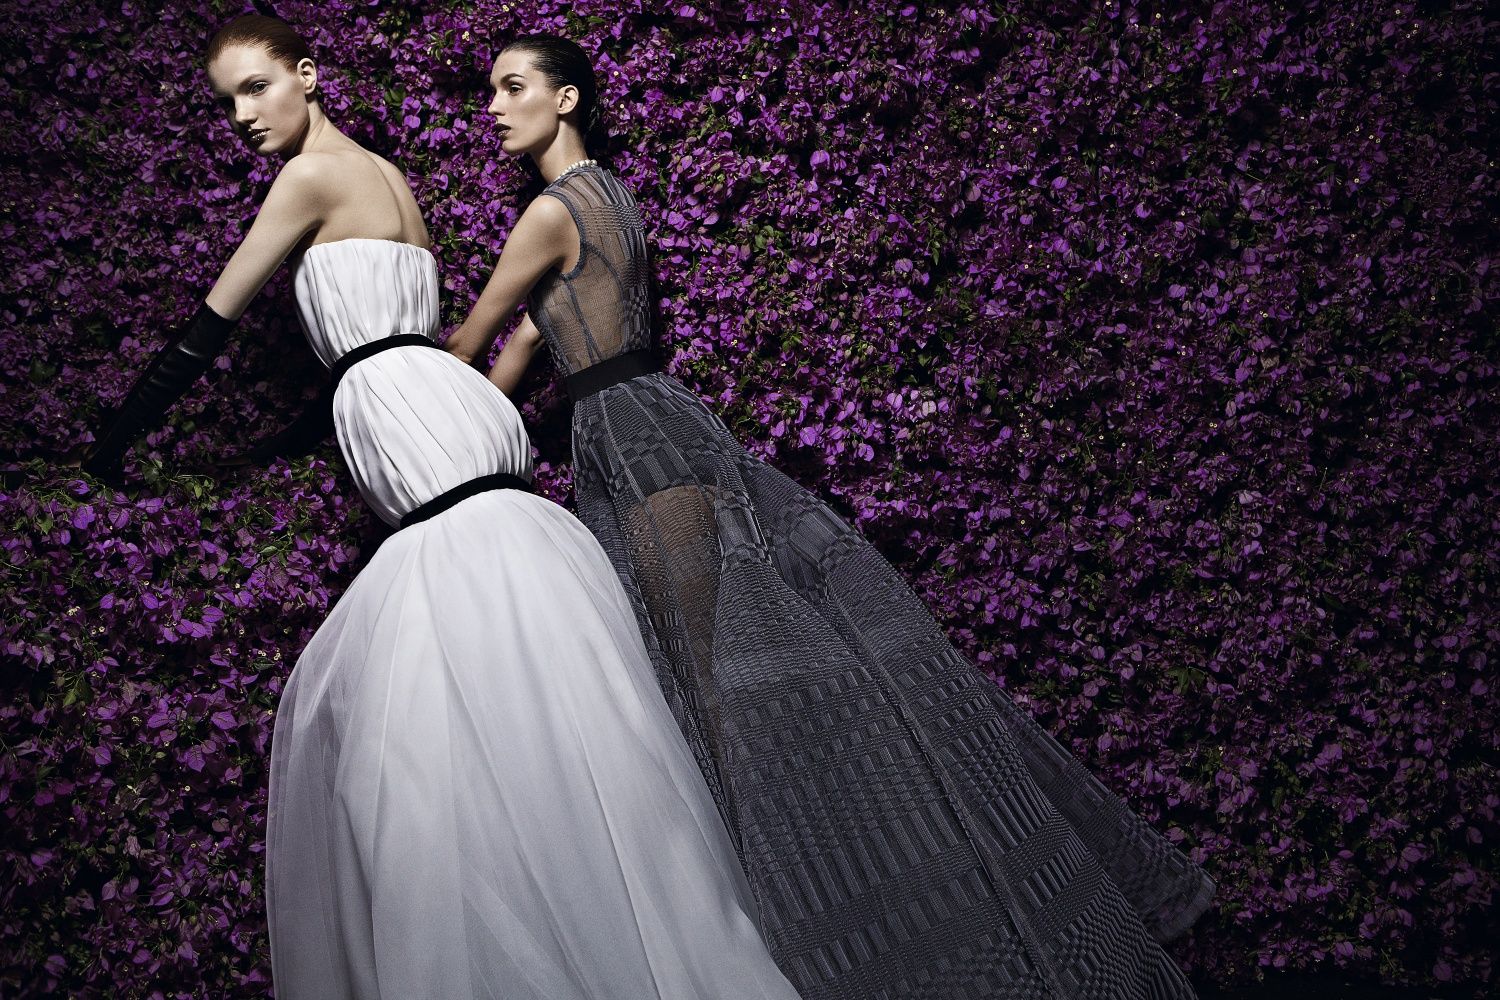 Christian Dior, Paris (fashion house); Raf Simons (designer) Look 37, evening dress and Look 38, evening dress autumn−winter 2013–14 haute couture collection Photo © Patrick Demarchelier/Licensed by Art+Commerce Models: Anastasia Ivanova, Premier Model Management and Marte Mei van Haaster, Viva Paris